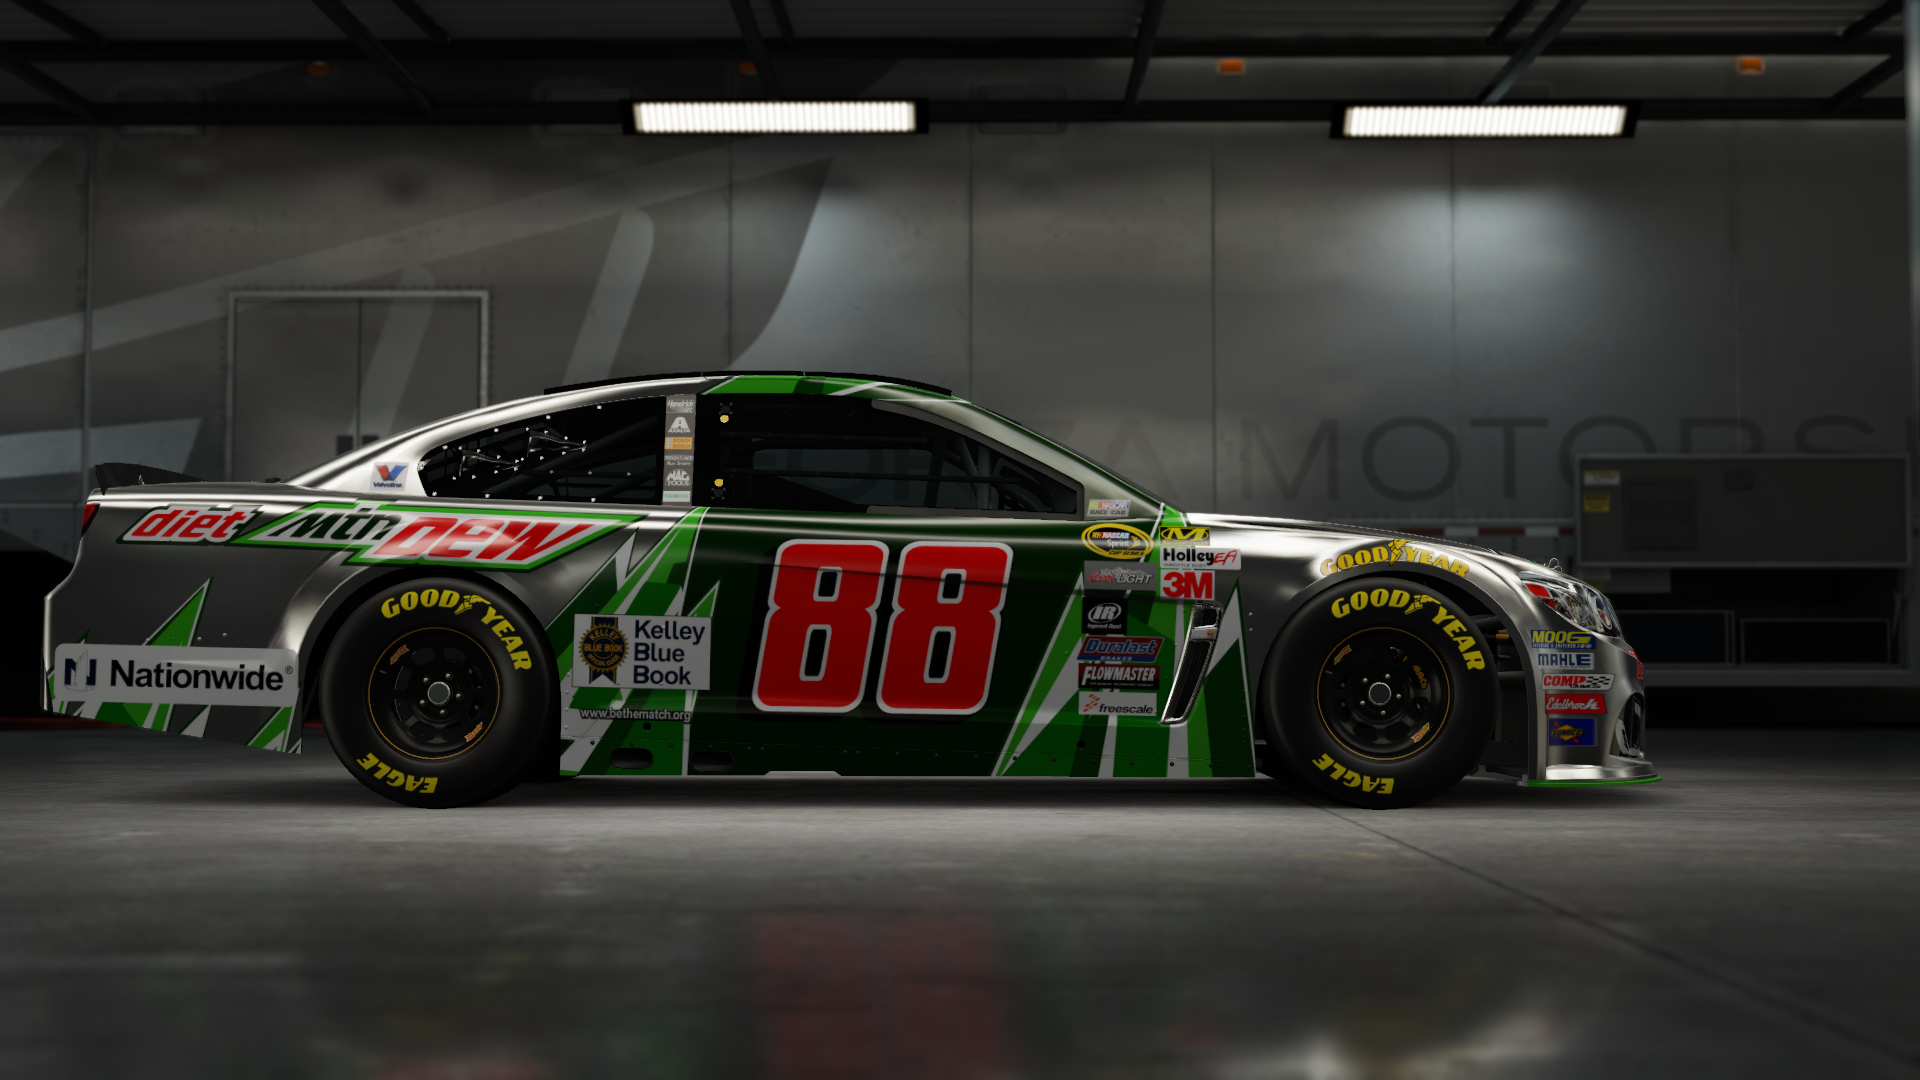 On the #88 Hendrick Motorsports Nationwide Insurance Super Sport, Made by SweedishThunder